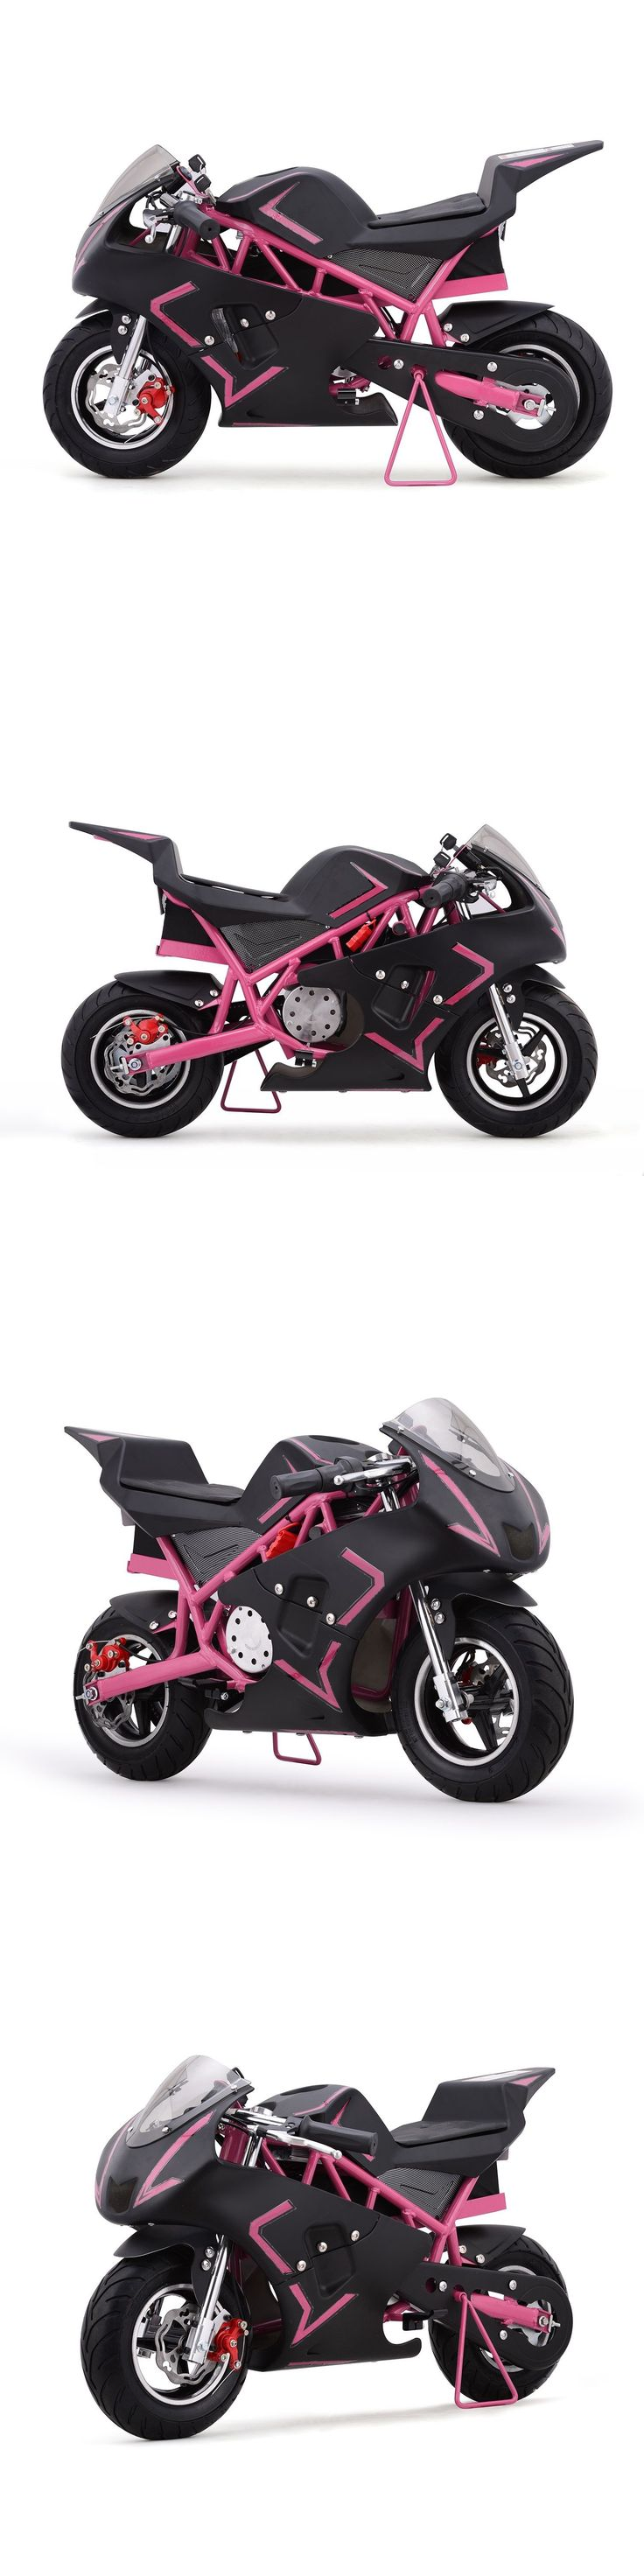 Motorcycle gloves with id pocket - Toy Vehicles 145946 Pink Motorcycle Mini Pocket Bike Electric Battery 500 Watt 36v Boys Girls